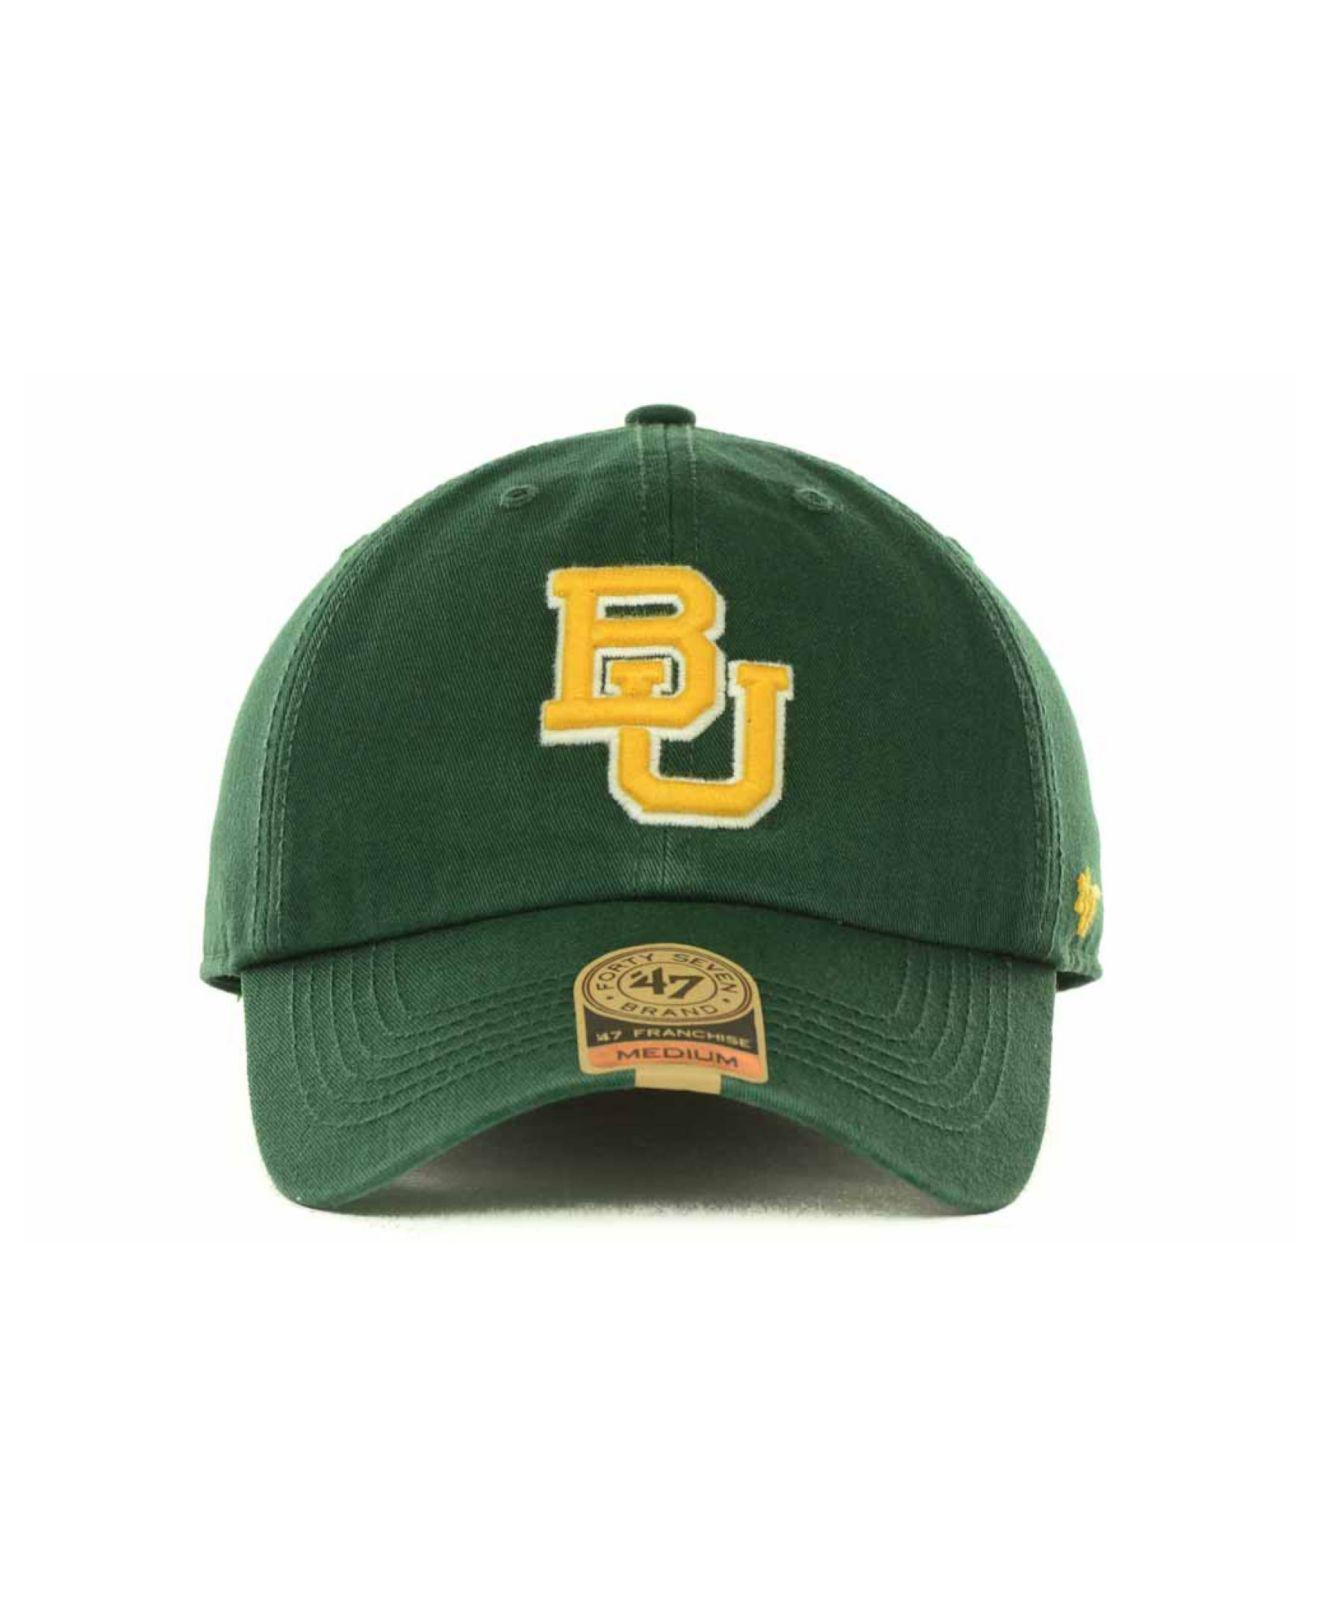 ... coupon lyst 47 brand baylor bears franchise cap in green for men save  31.034482758620683 5ae34 e91f0 2f2cd4dff